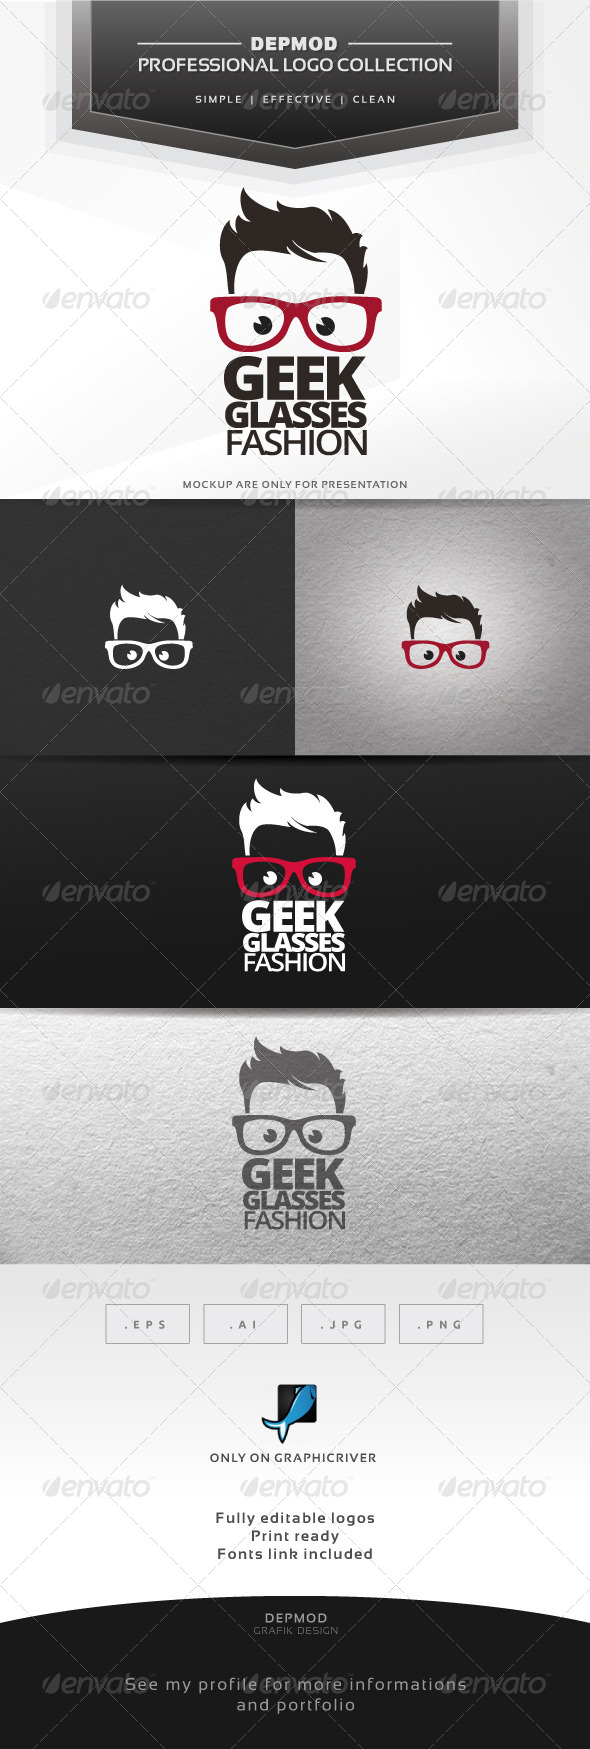 GraphicRiver Geek Glasses Fashion Logo 6705176